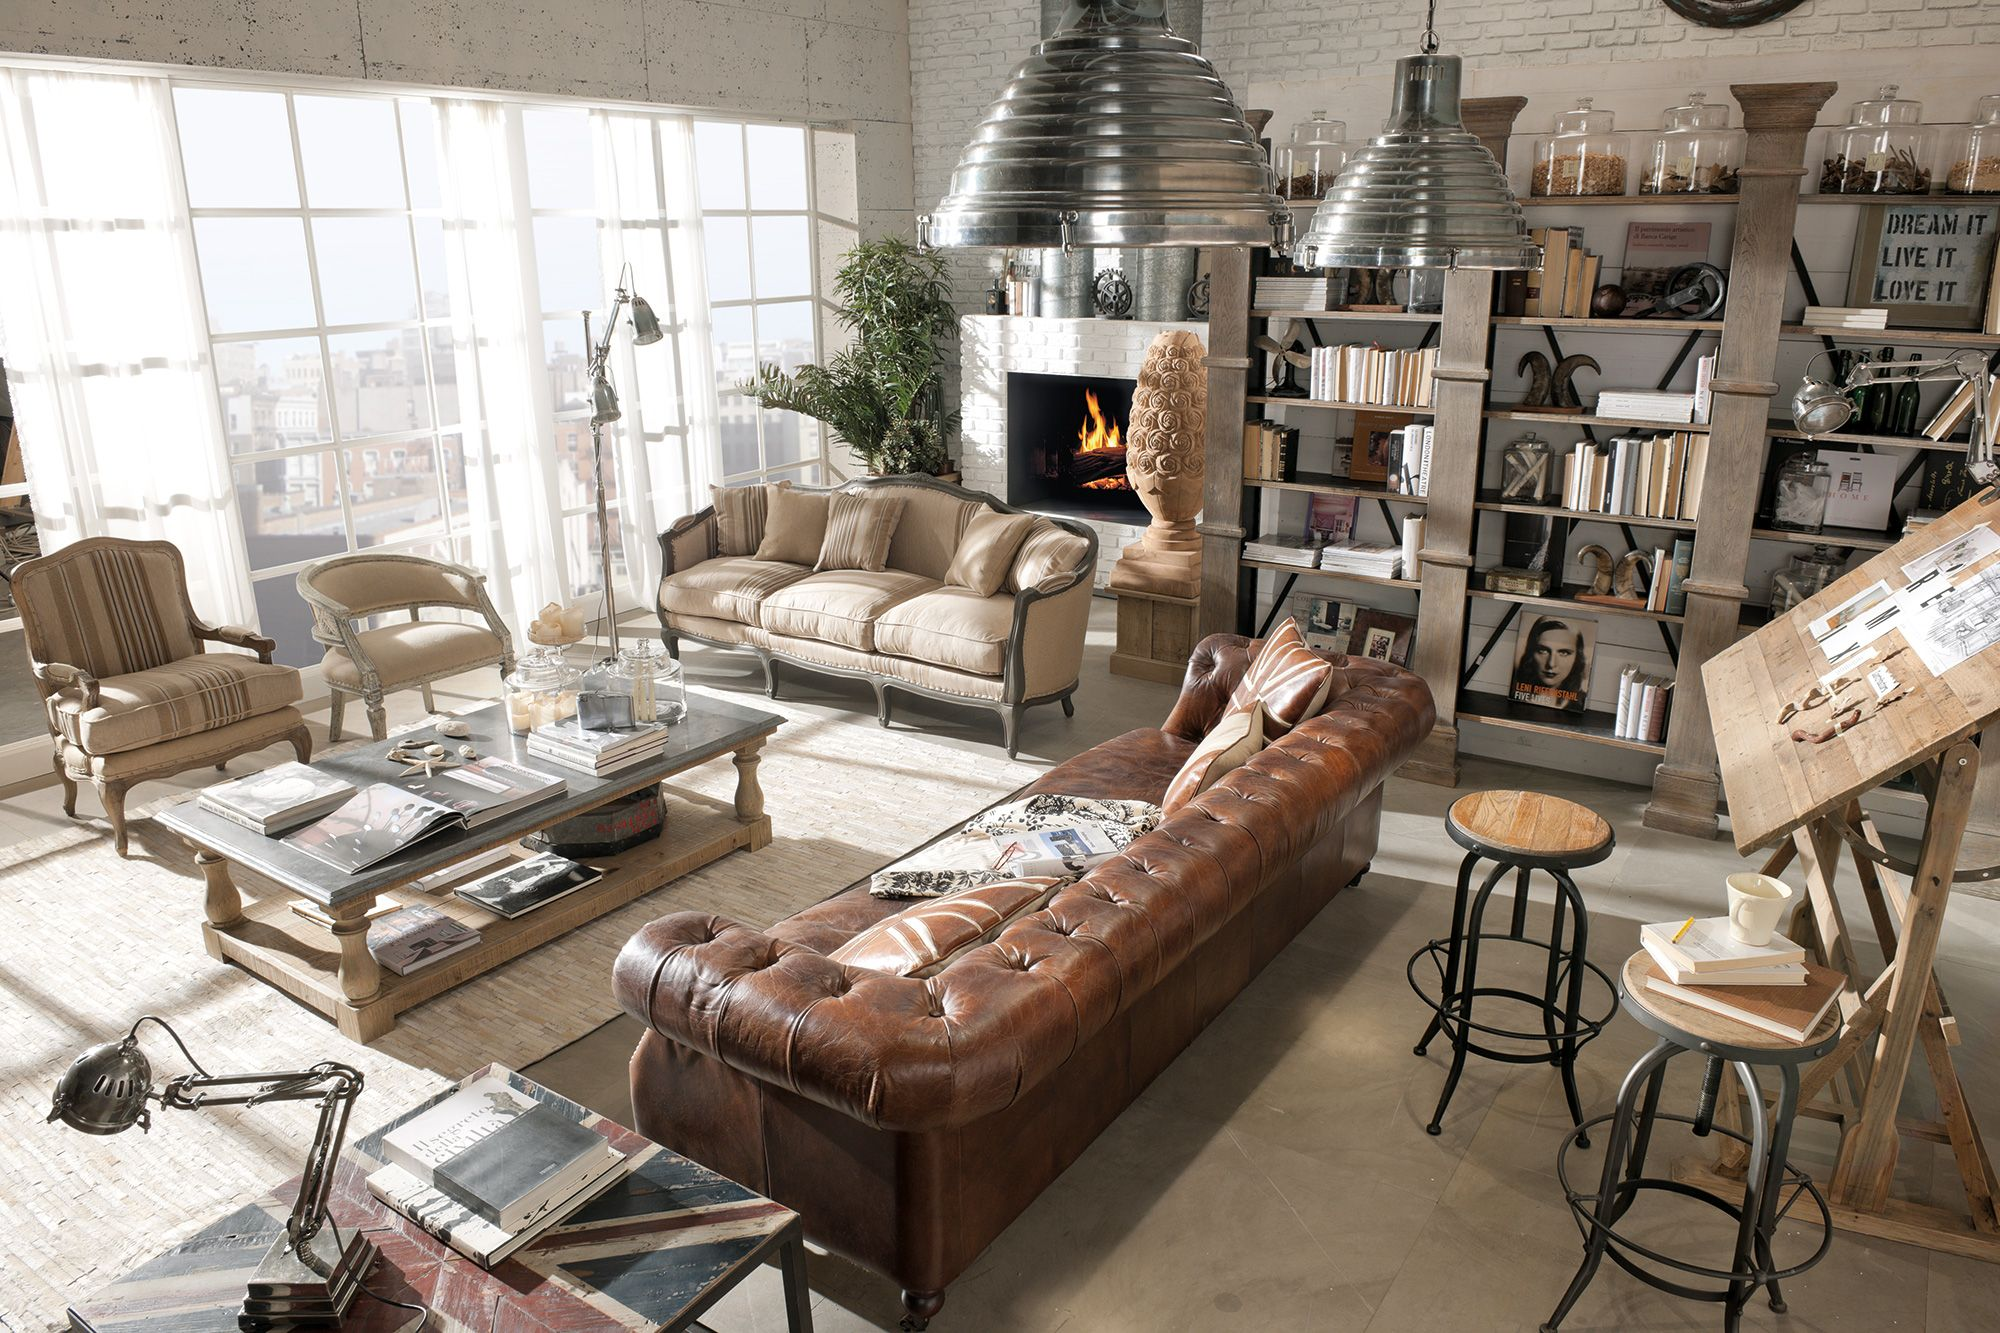 Arredamento country vintage industrial loft urban for Arredamento industry